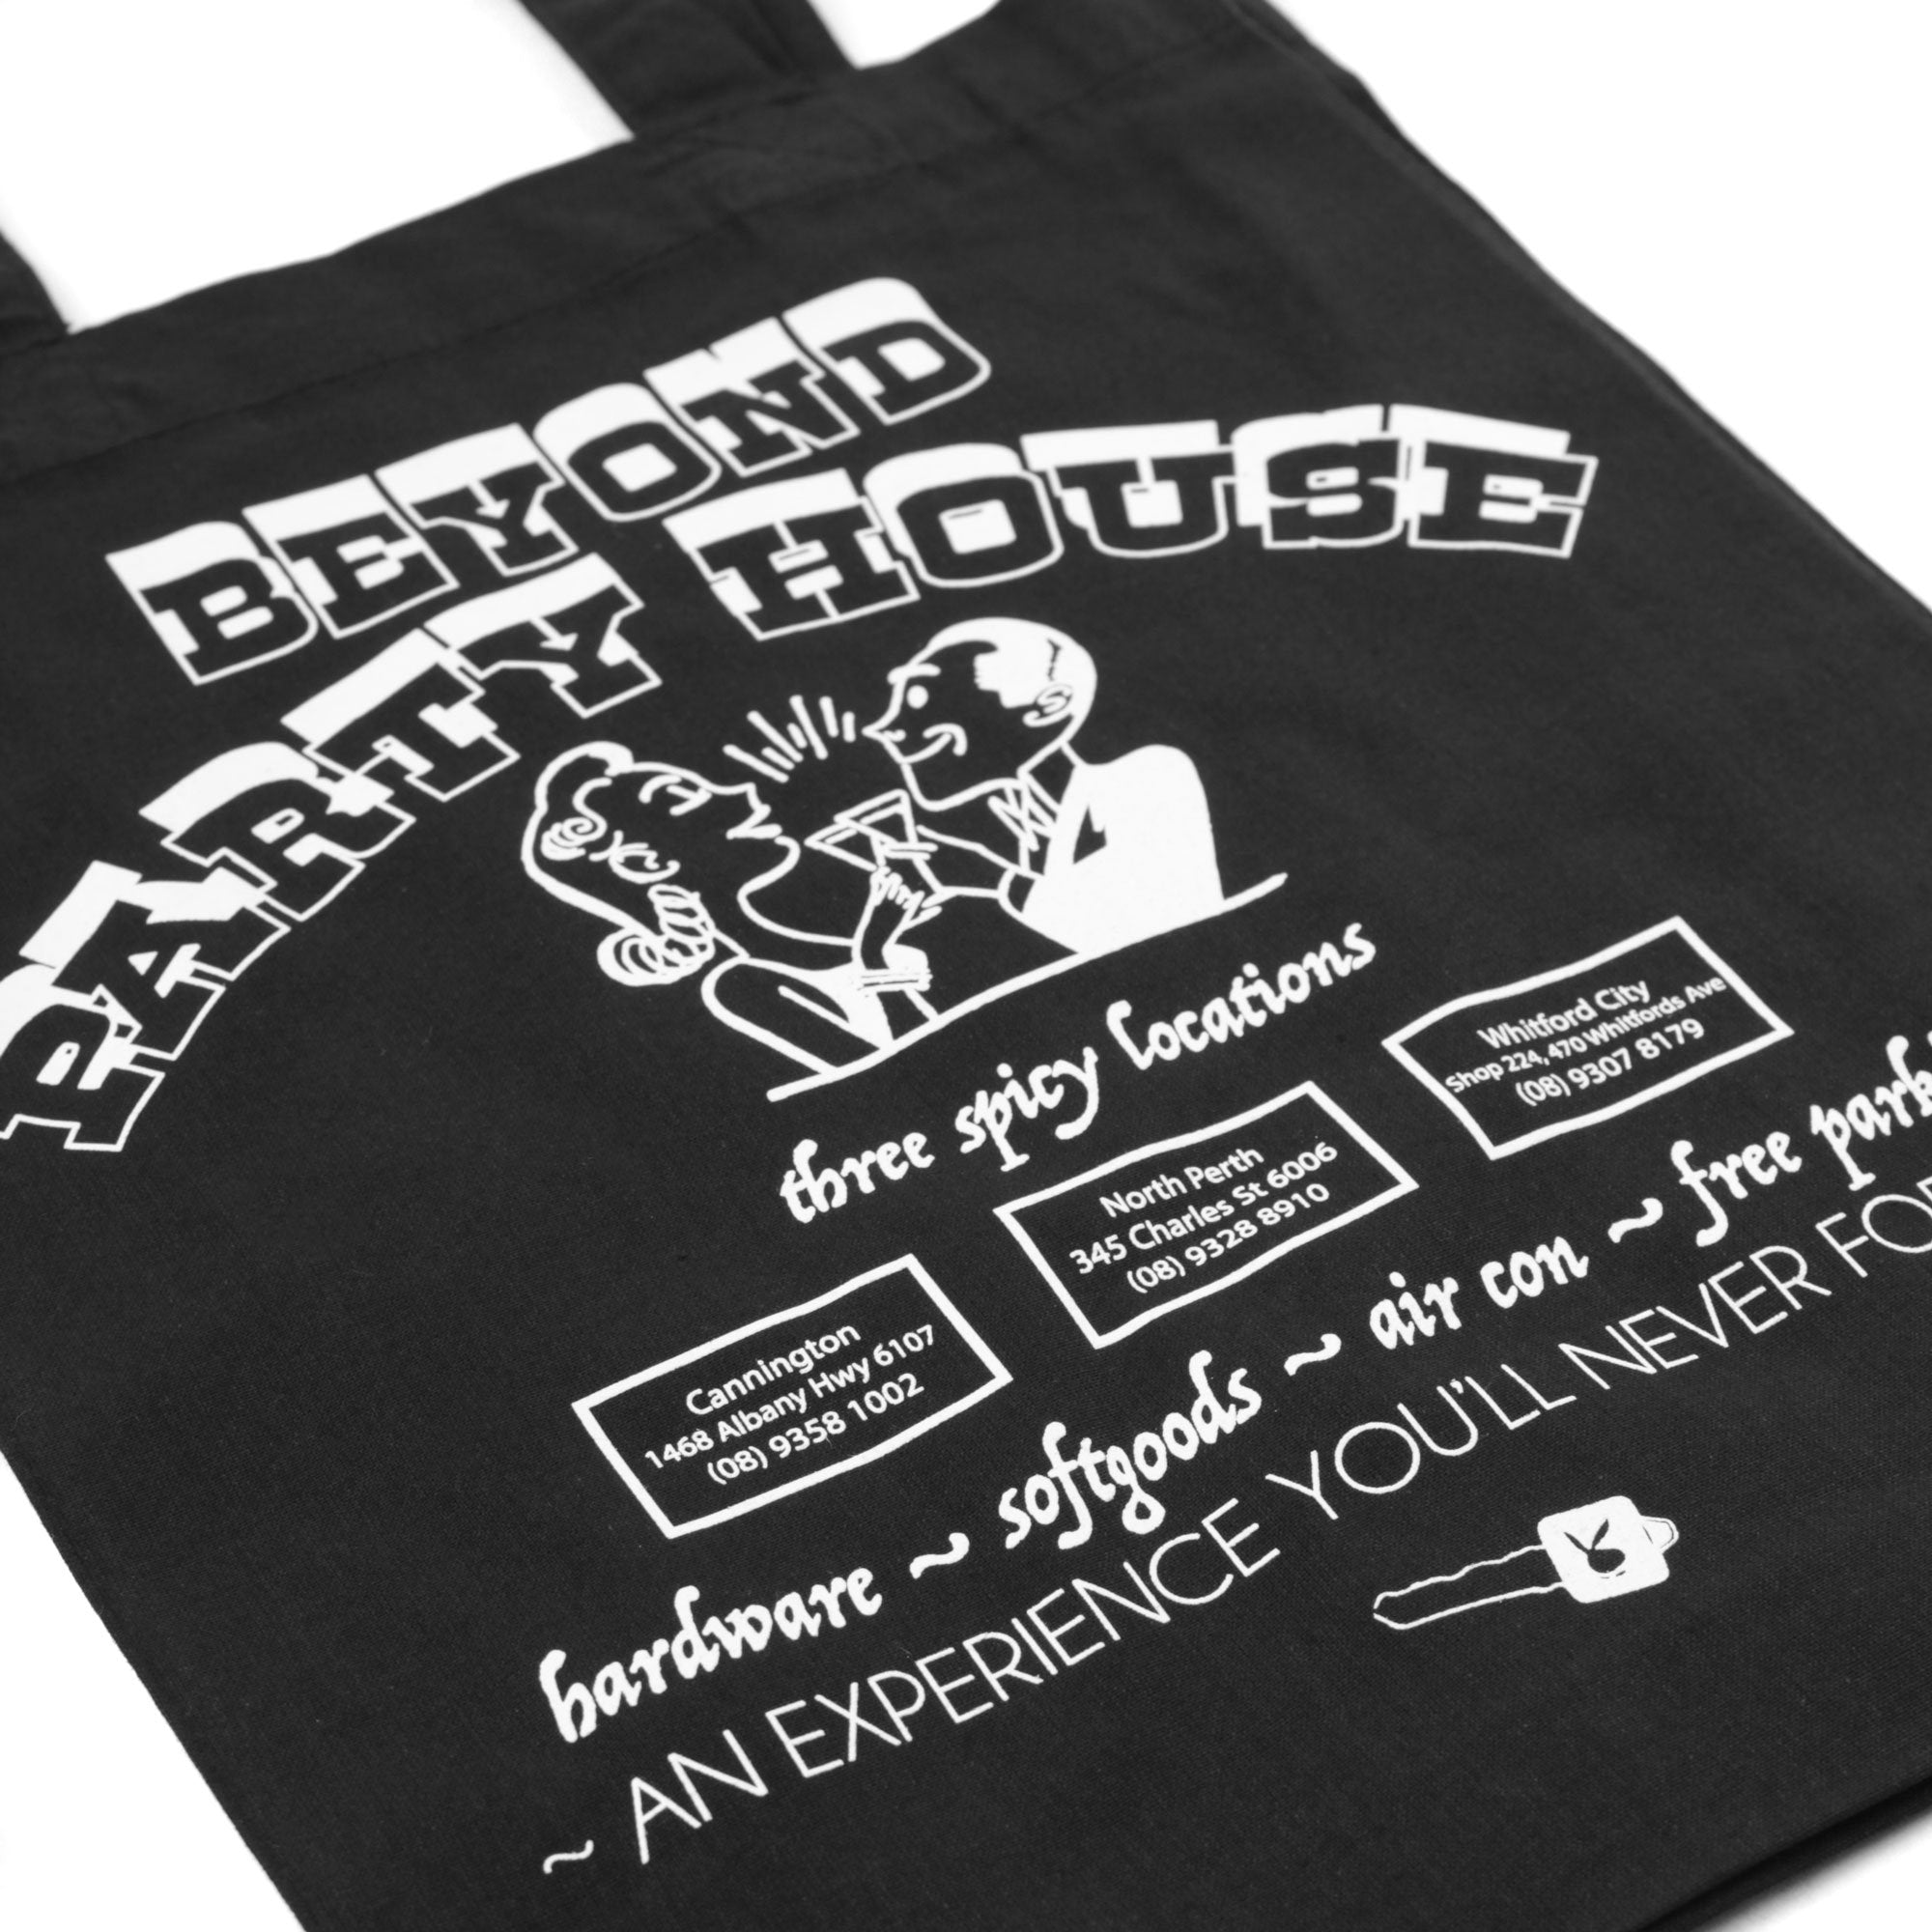 Beyond Party House Tote Bag Product Photo #2